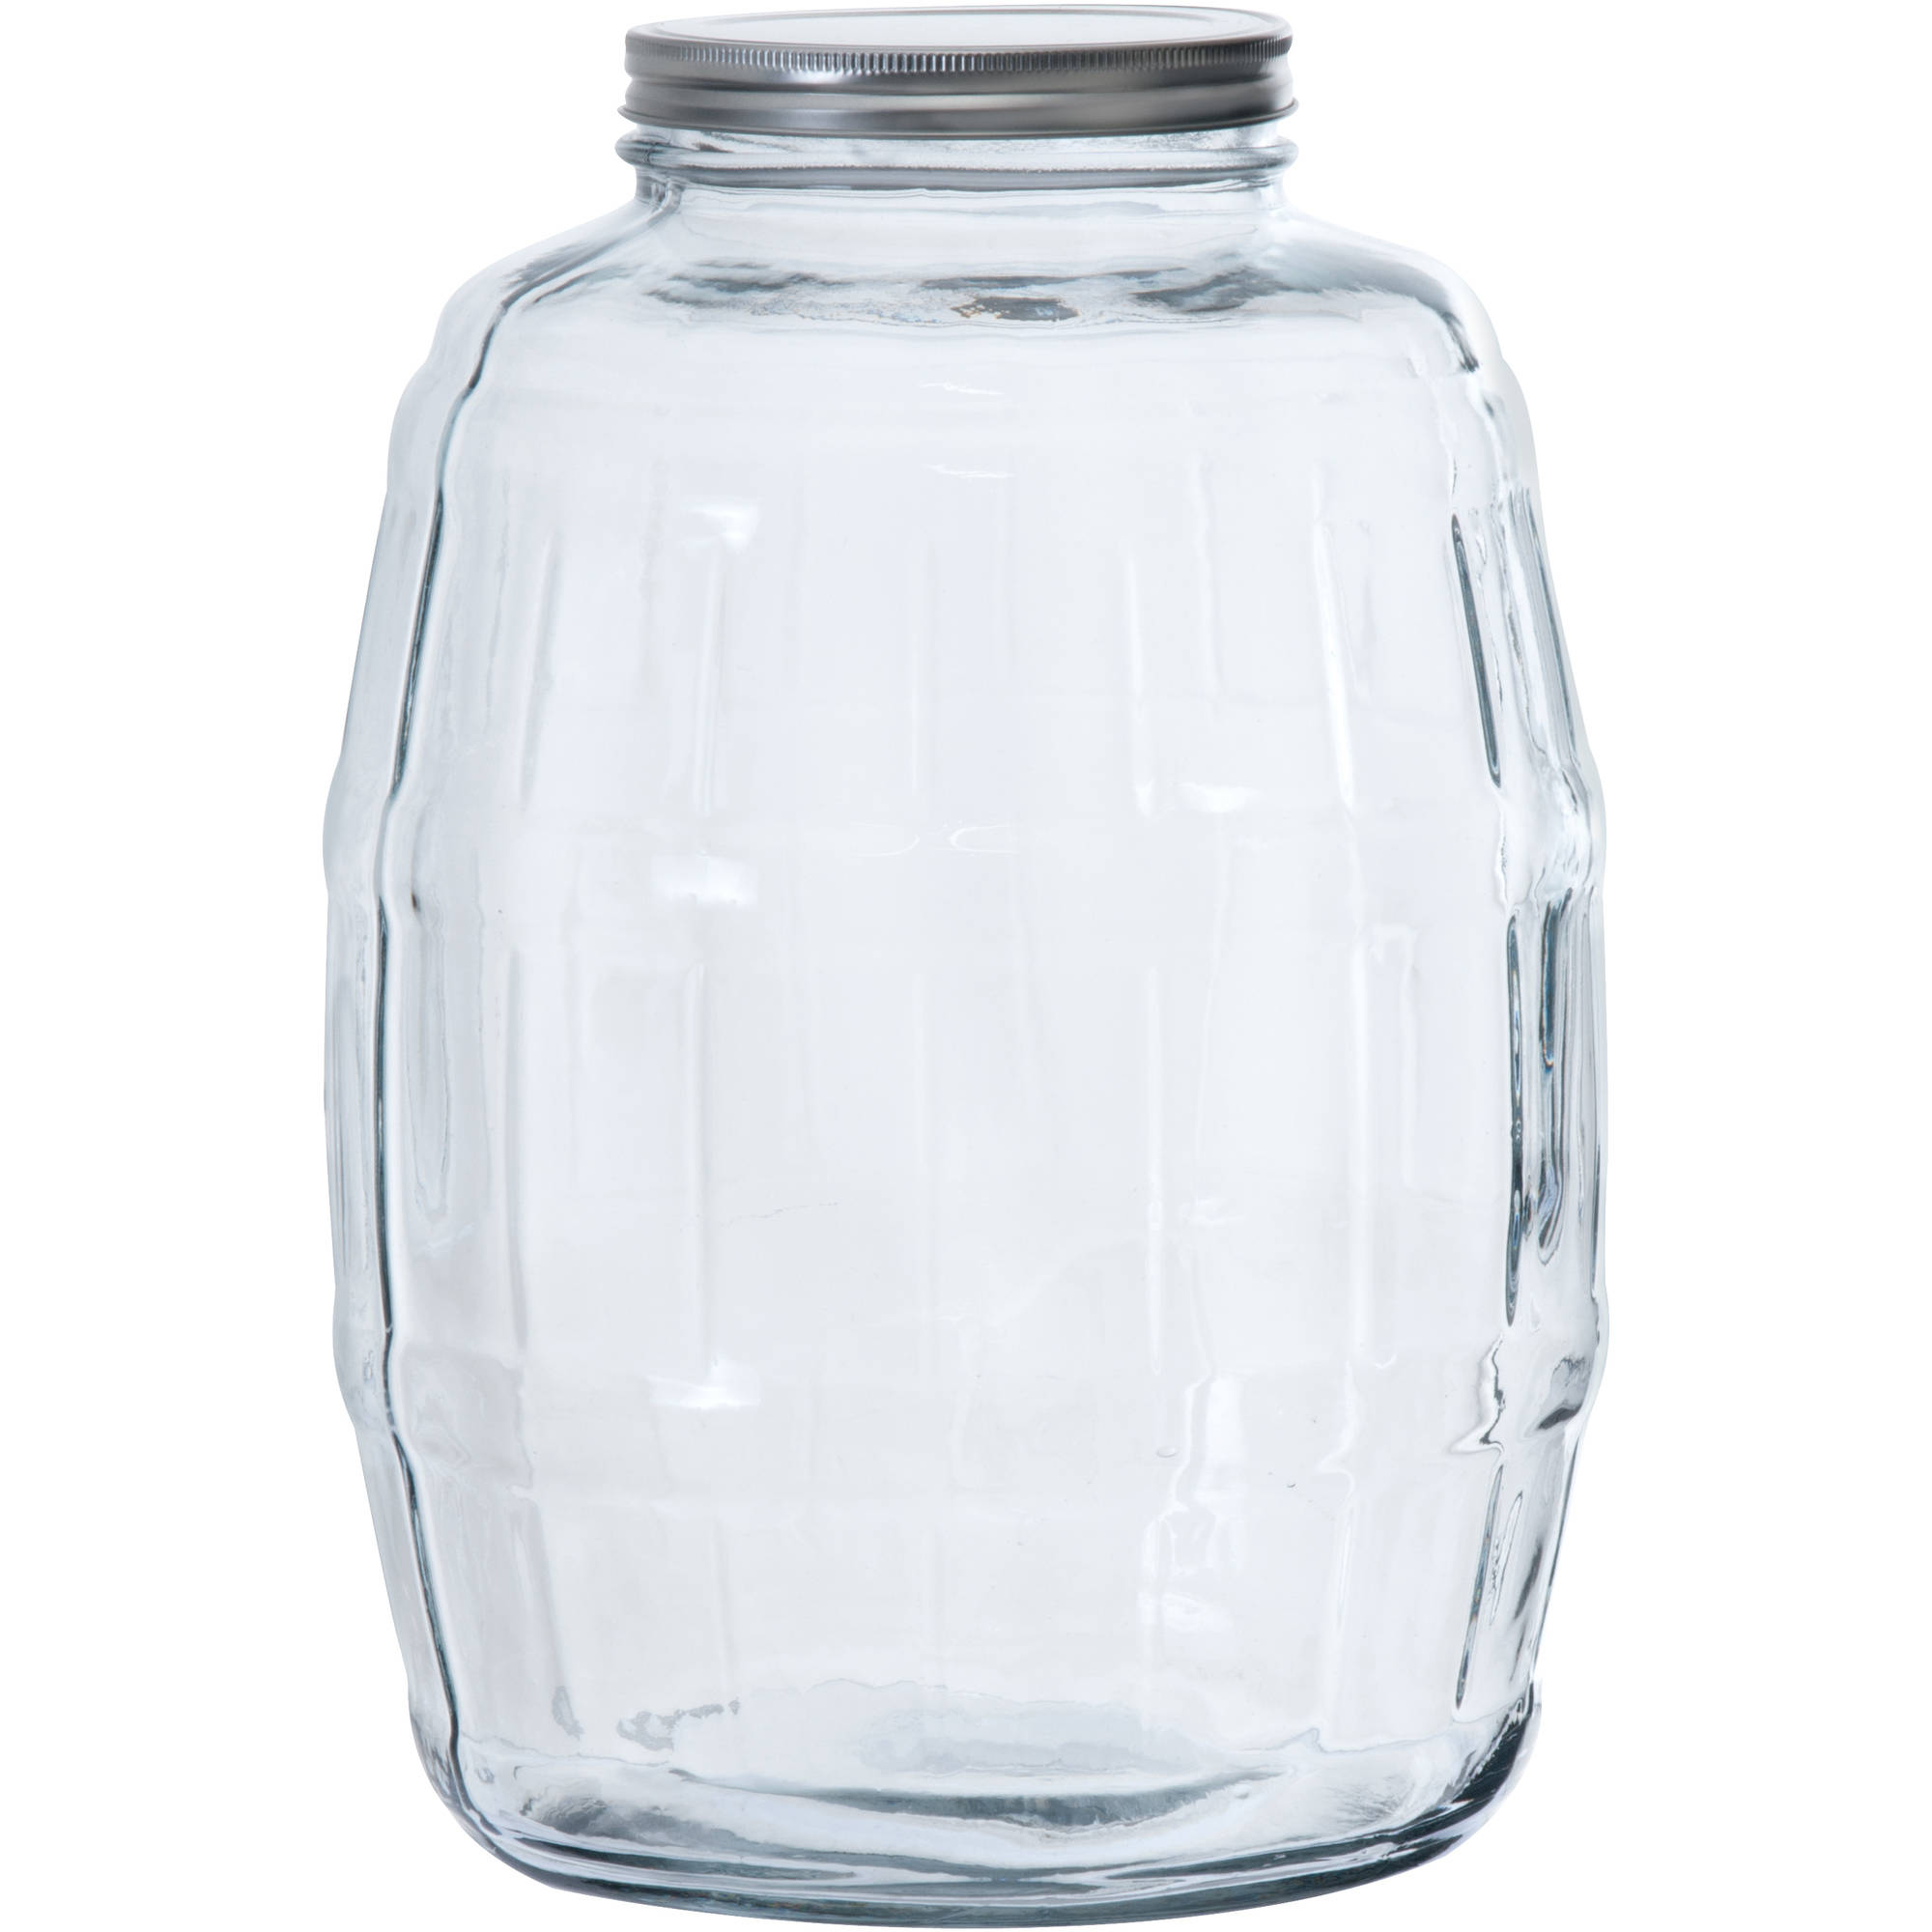 Anchor Hocking 25 Gallon Glass Barrel Jar Walmartcom